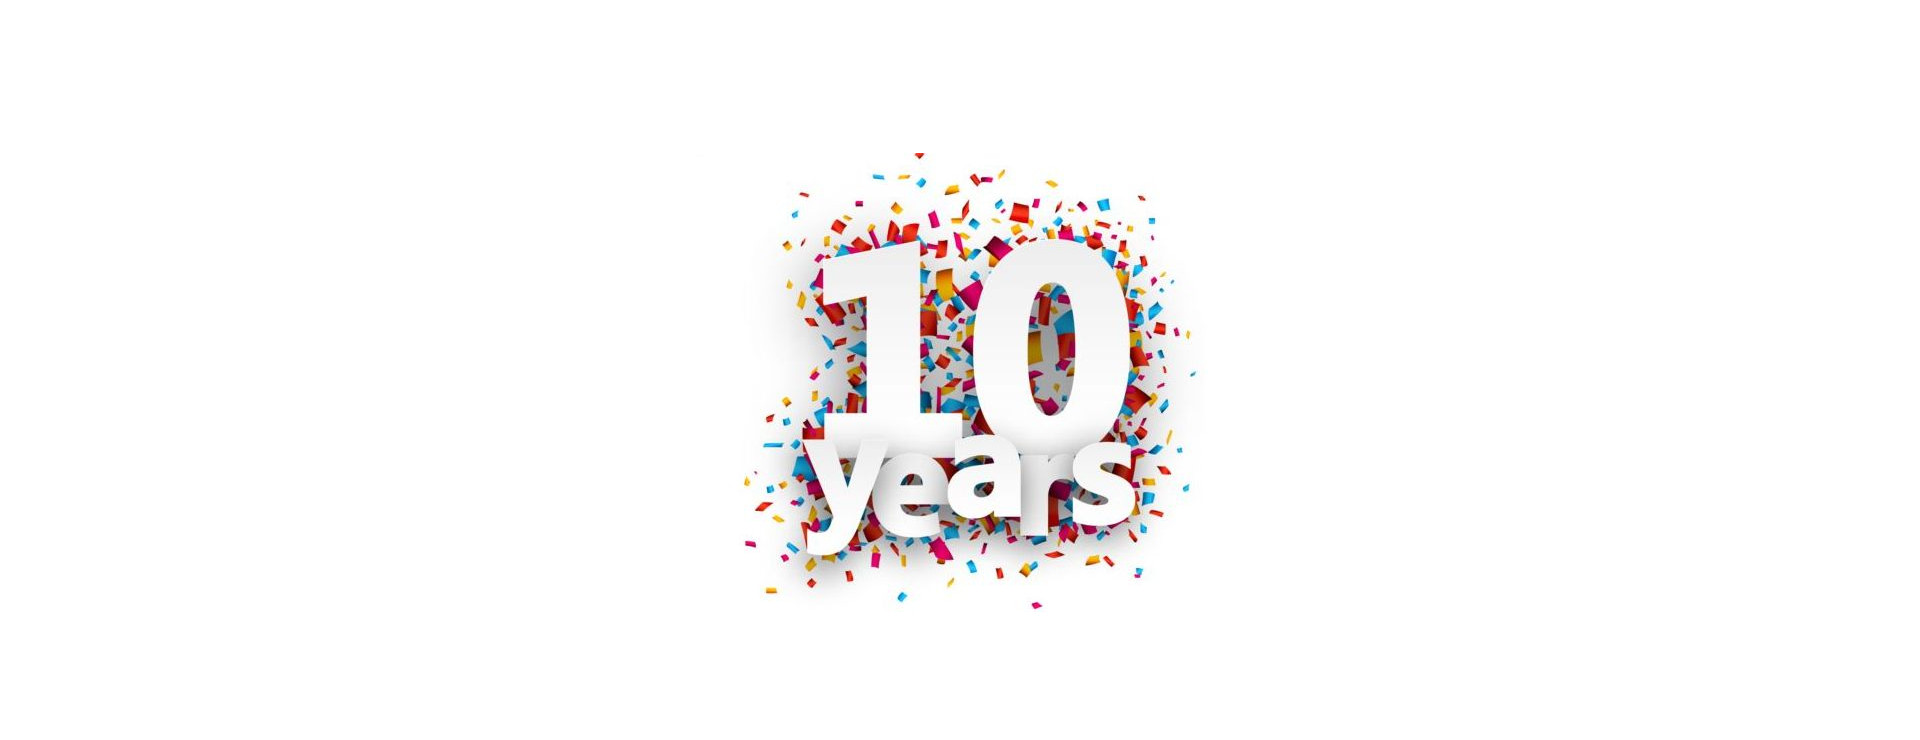 Since 10 March 2008 